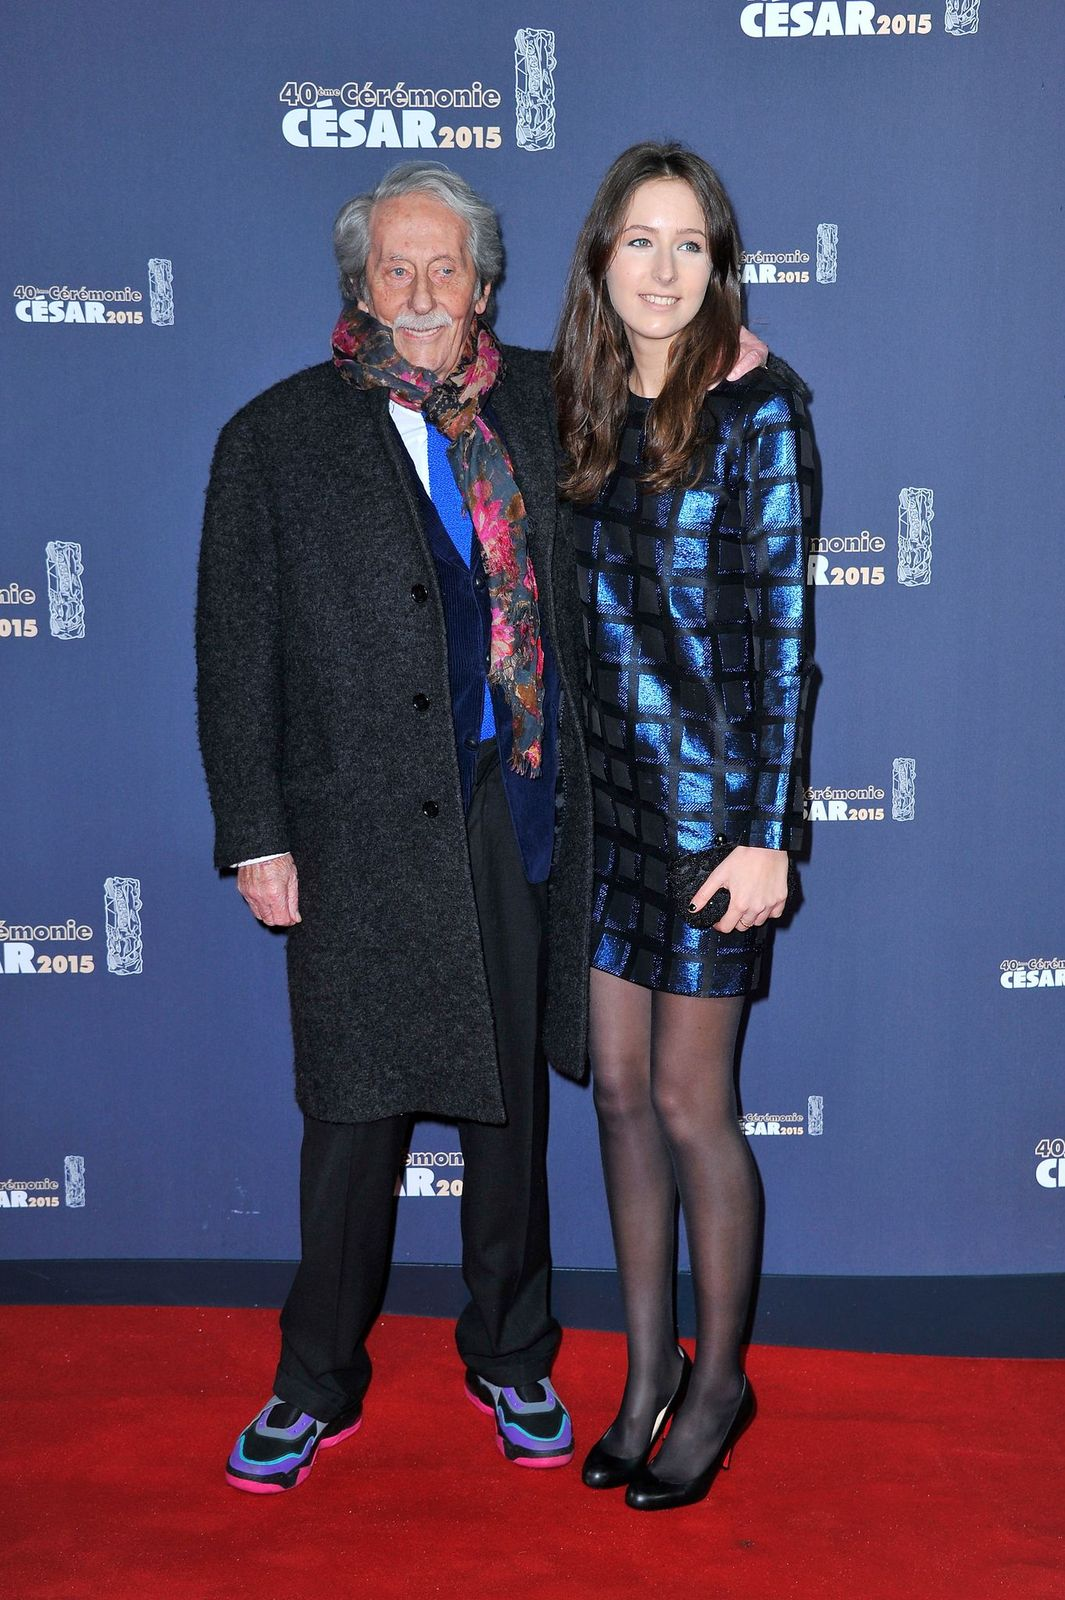 Jean Rochefort et Clemence Rochefort au Théâtre du Chatelet le 20 février 2015 à Paris, France. | Photo : Getty Images